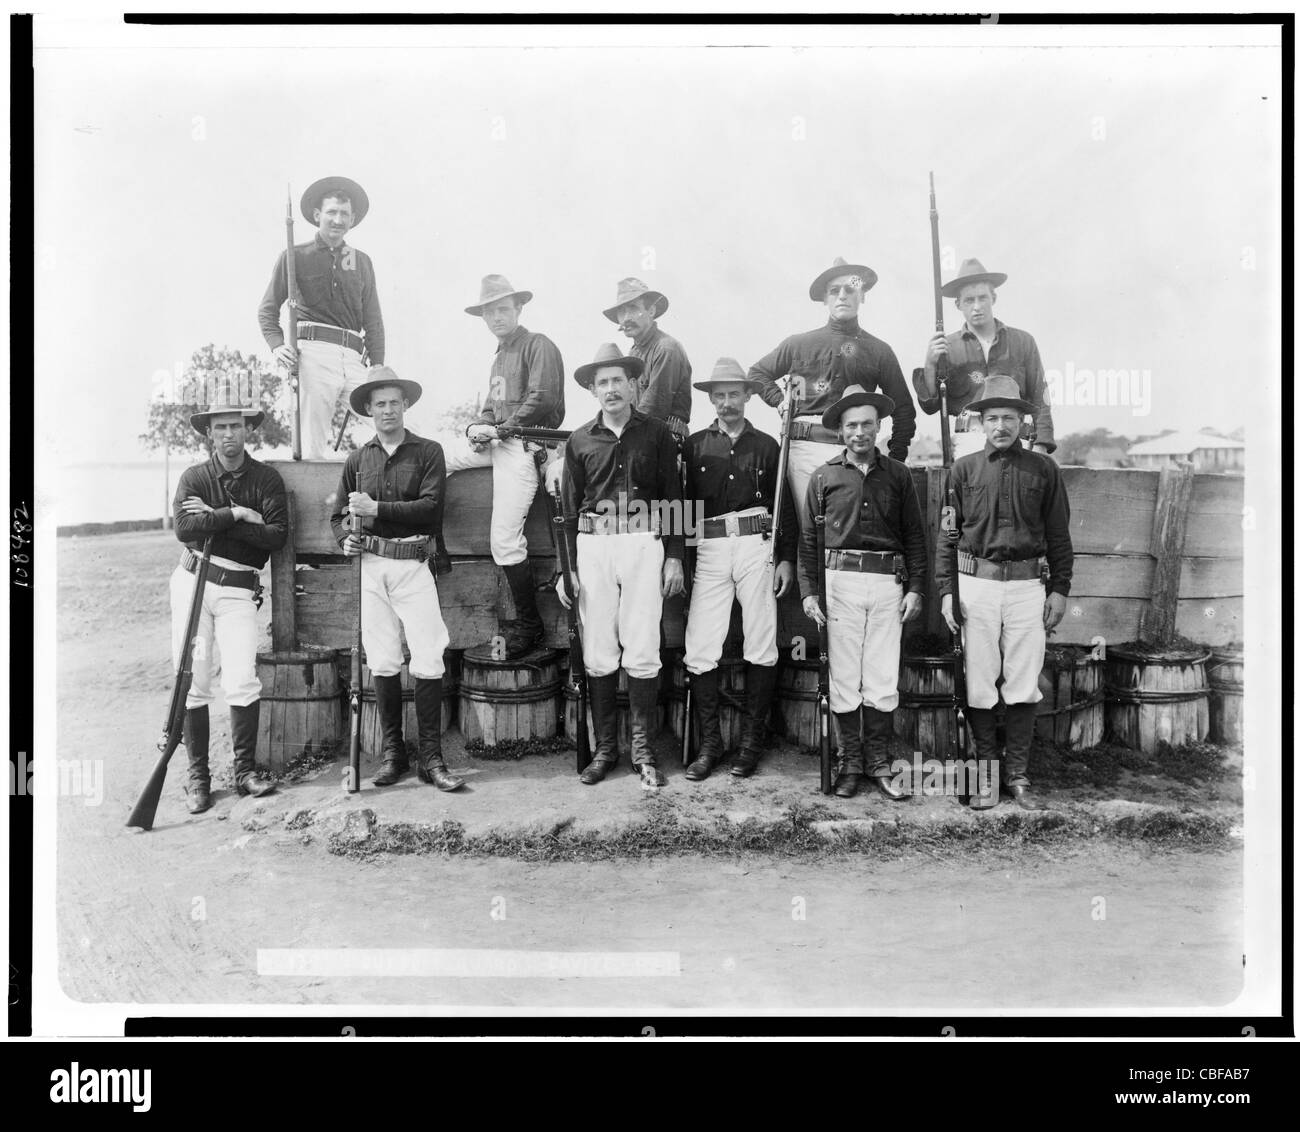 Eleven American soldiers(?) posed, Cavite, Philippine Islands. 1899 - Stock Image